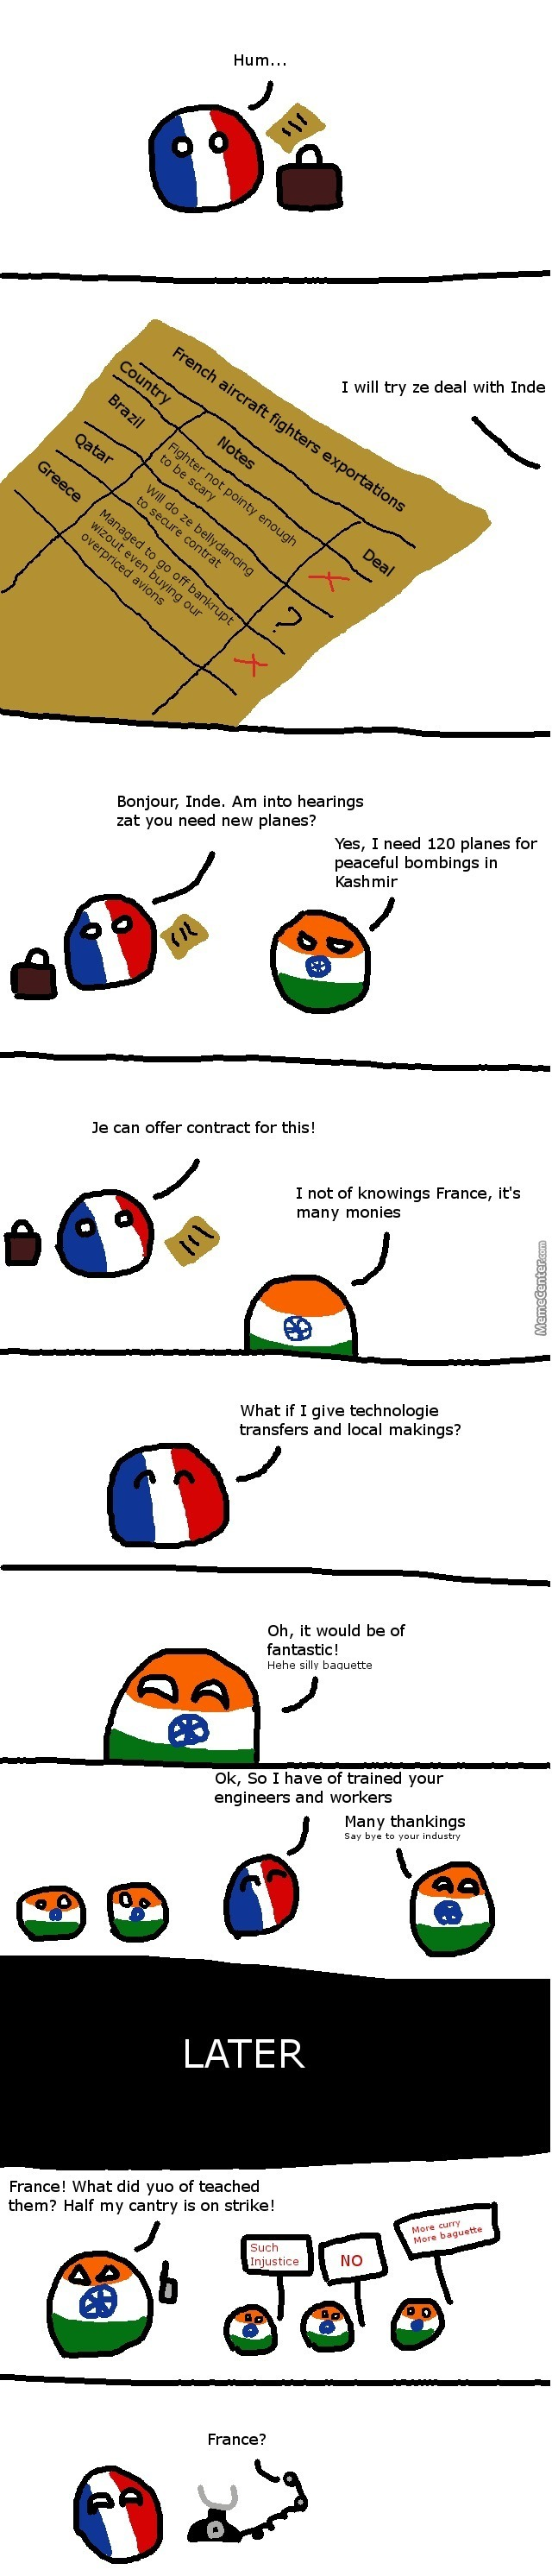 French Technology Backfires